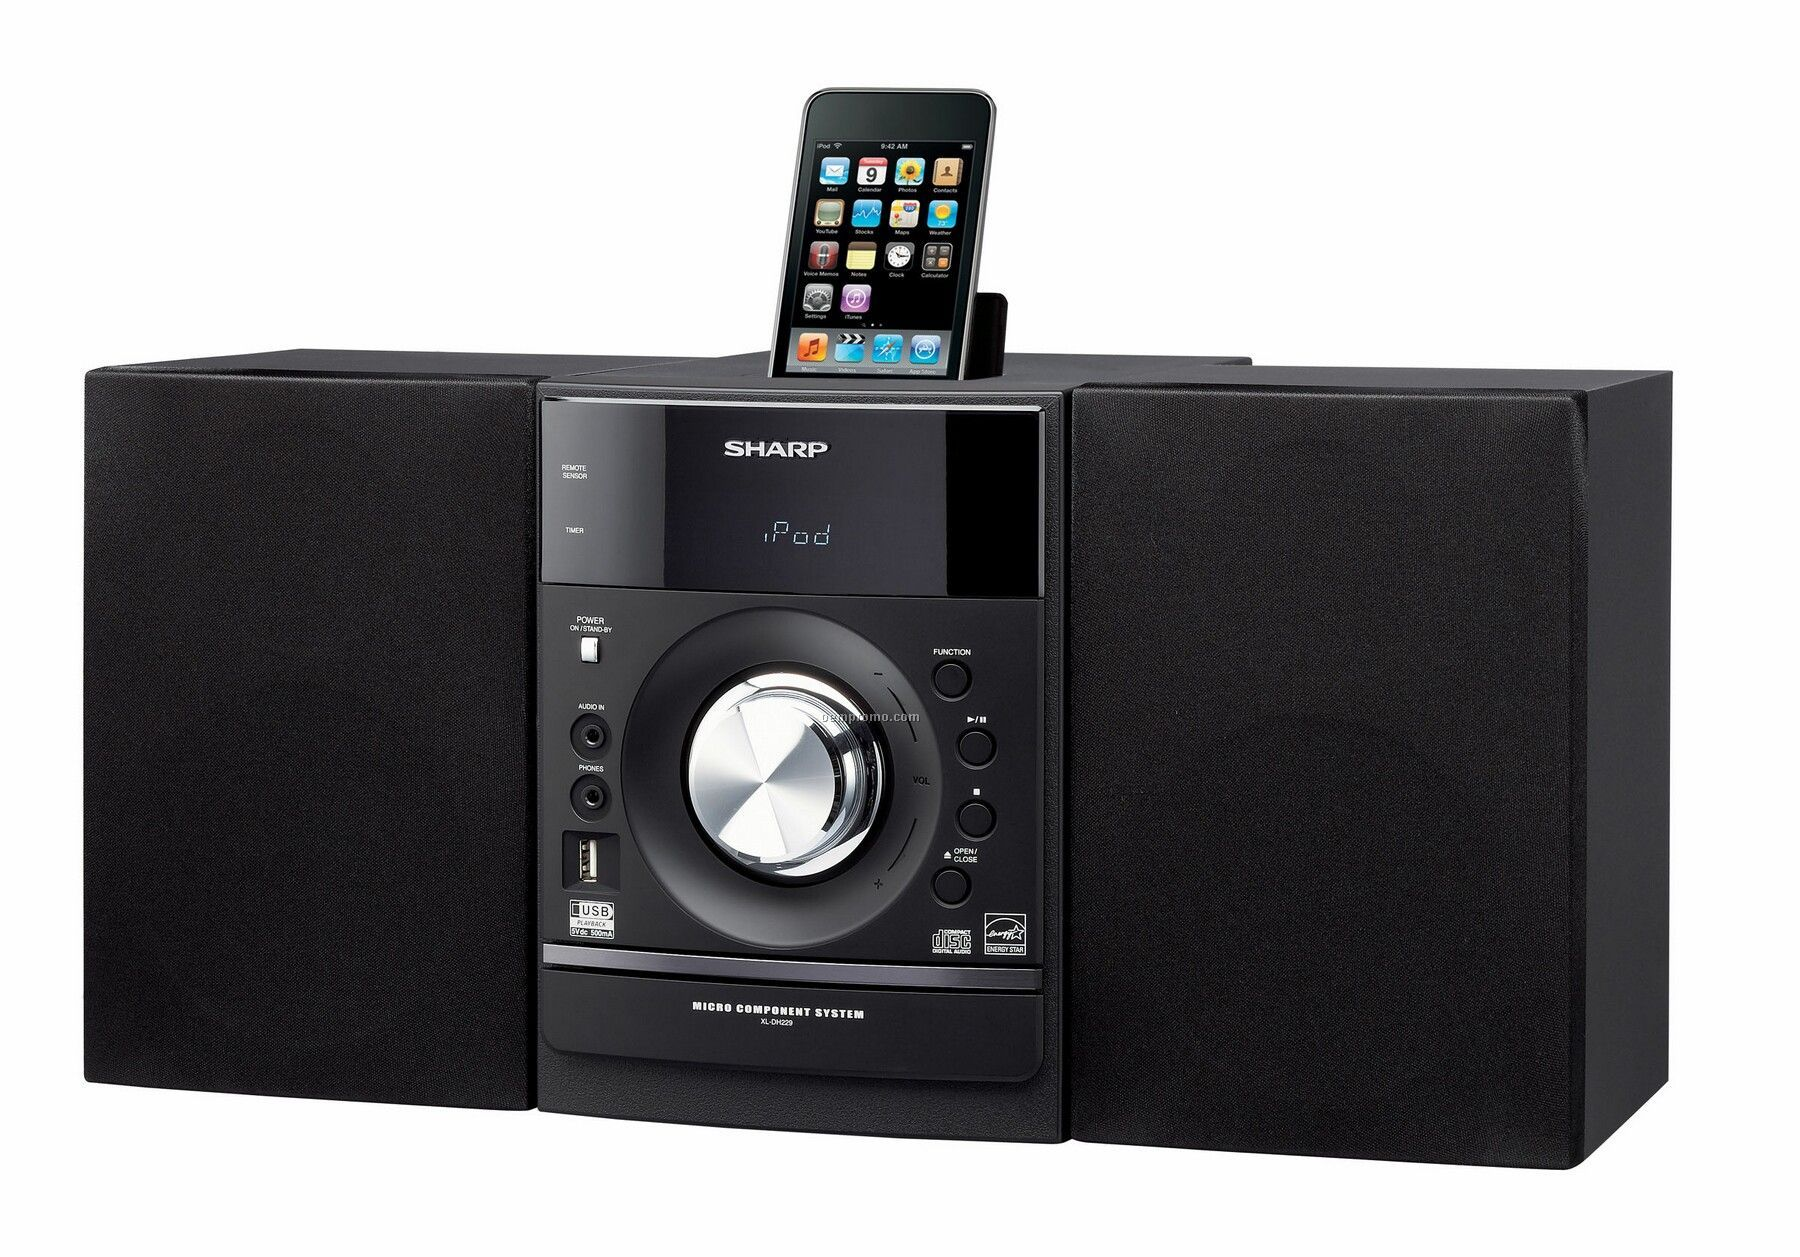 Sharp Ipod Docking Micro Shelf System